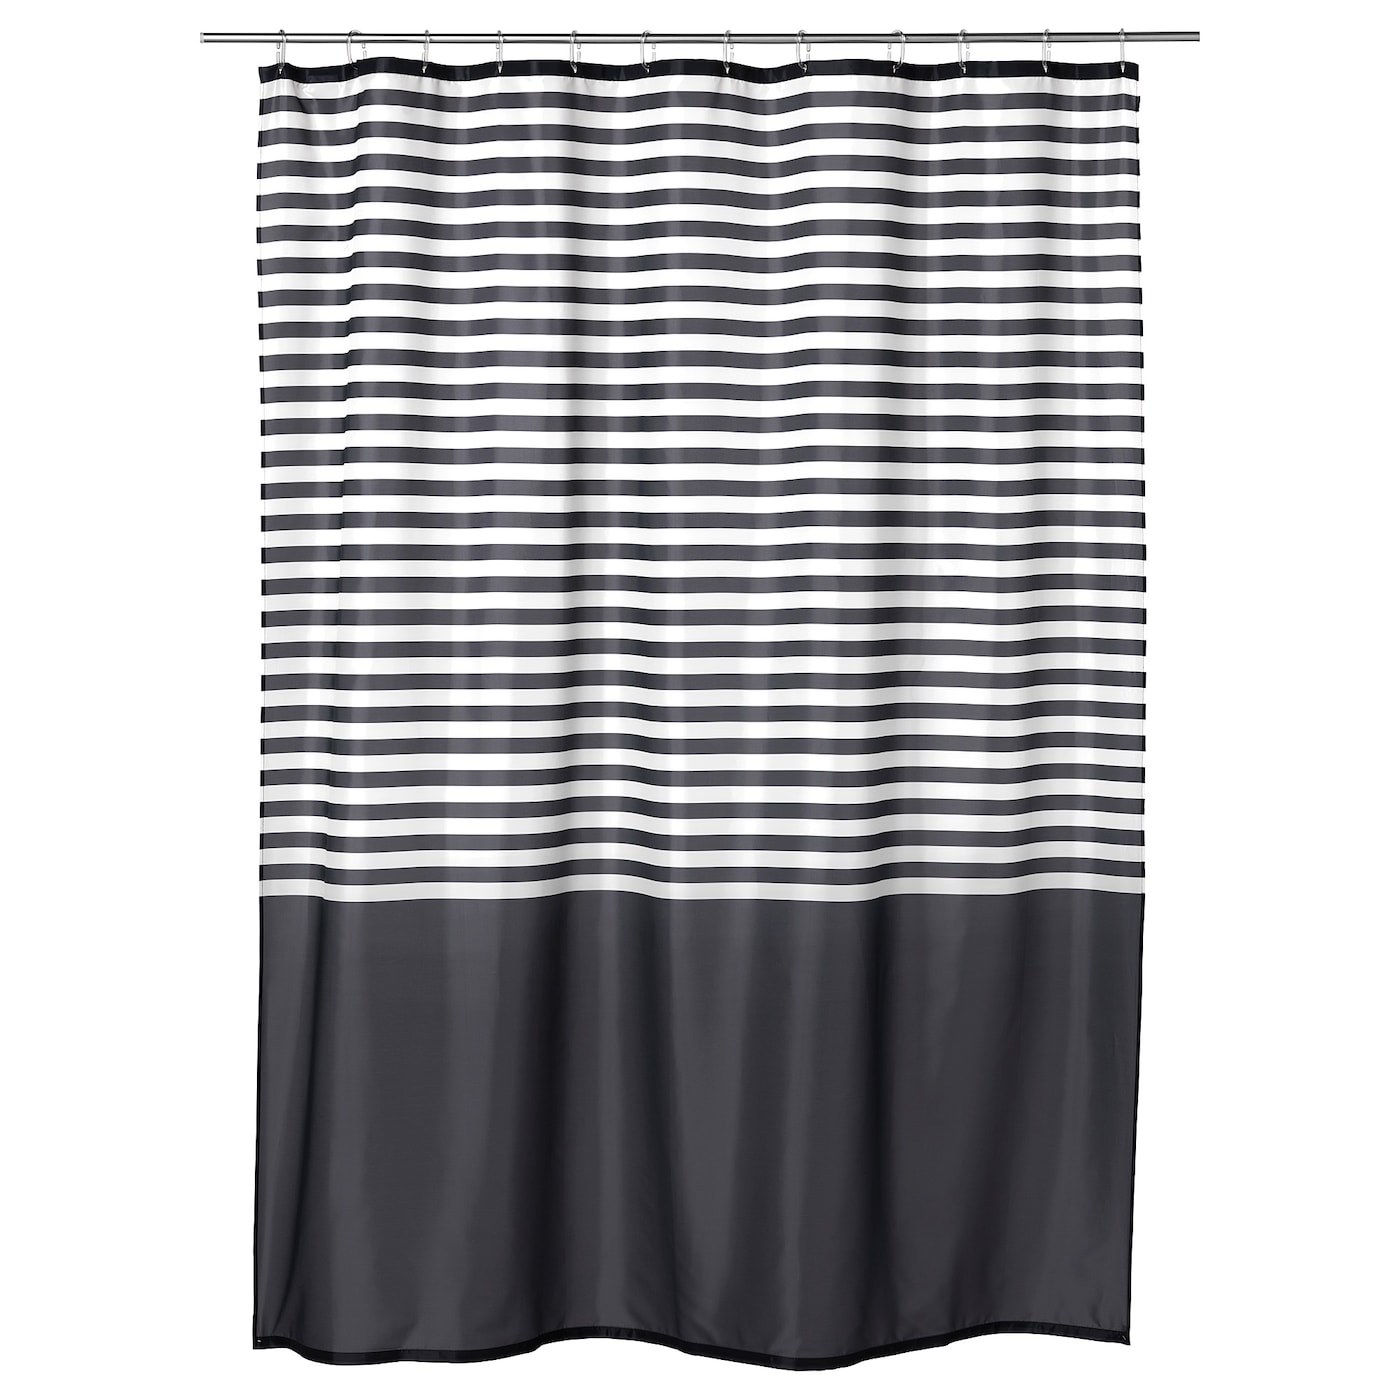 IKEA VADSJÖN shower curtain Densely woven polyester fabric with water-repellent coating.